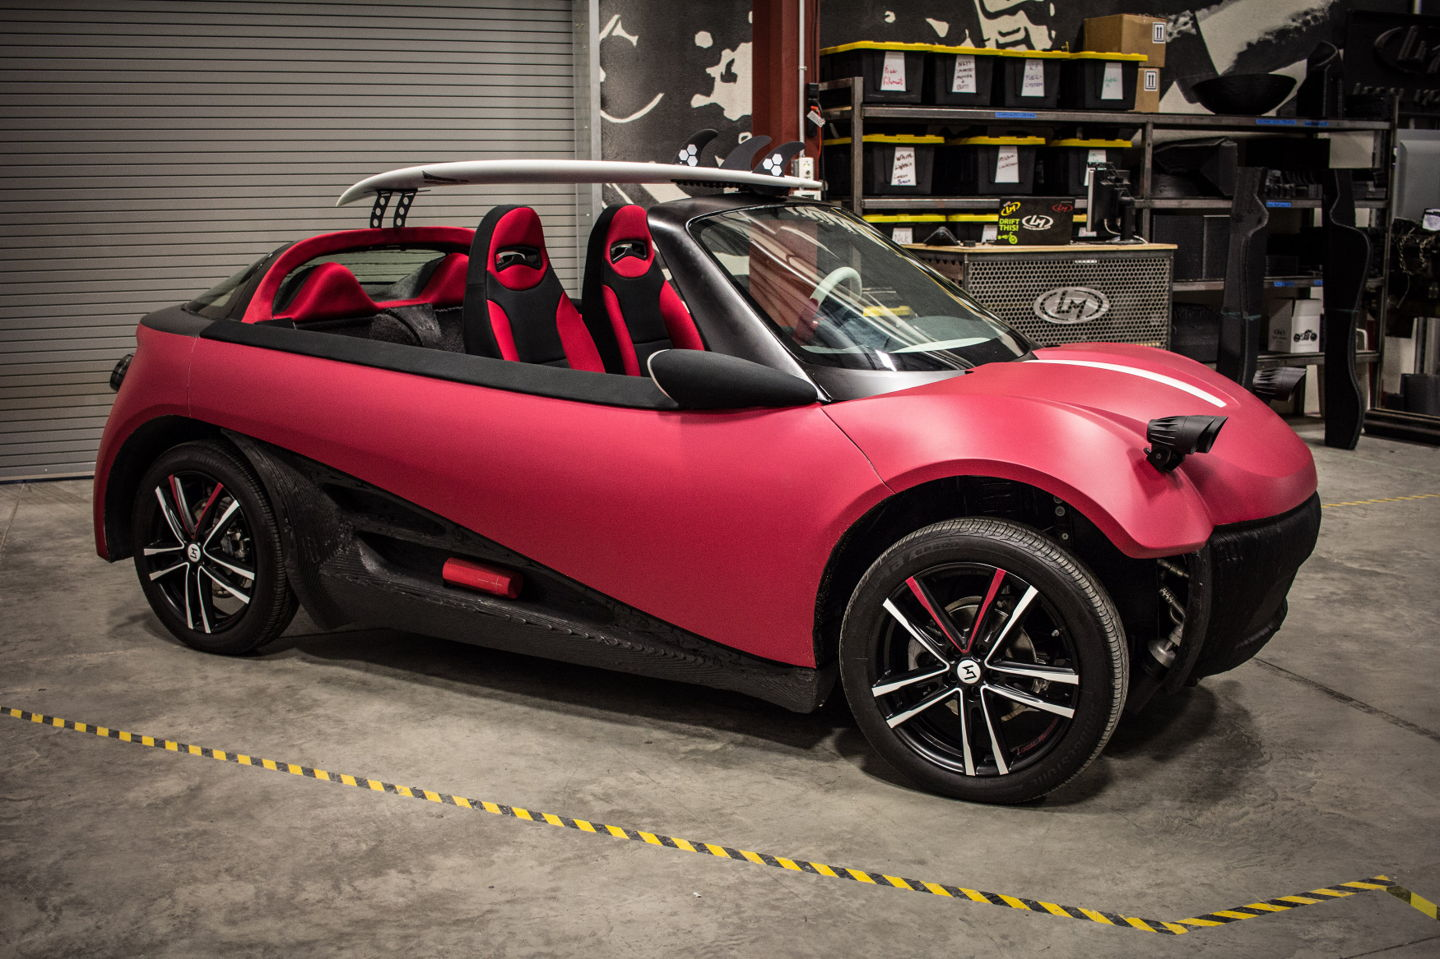 What could be the world's first road-ready, 3D printed car, the LM3D Swim (image courtesy of Local Motors).